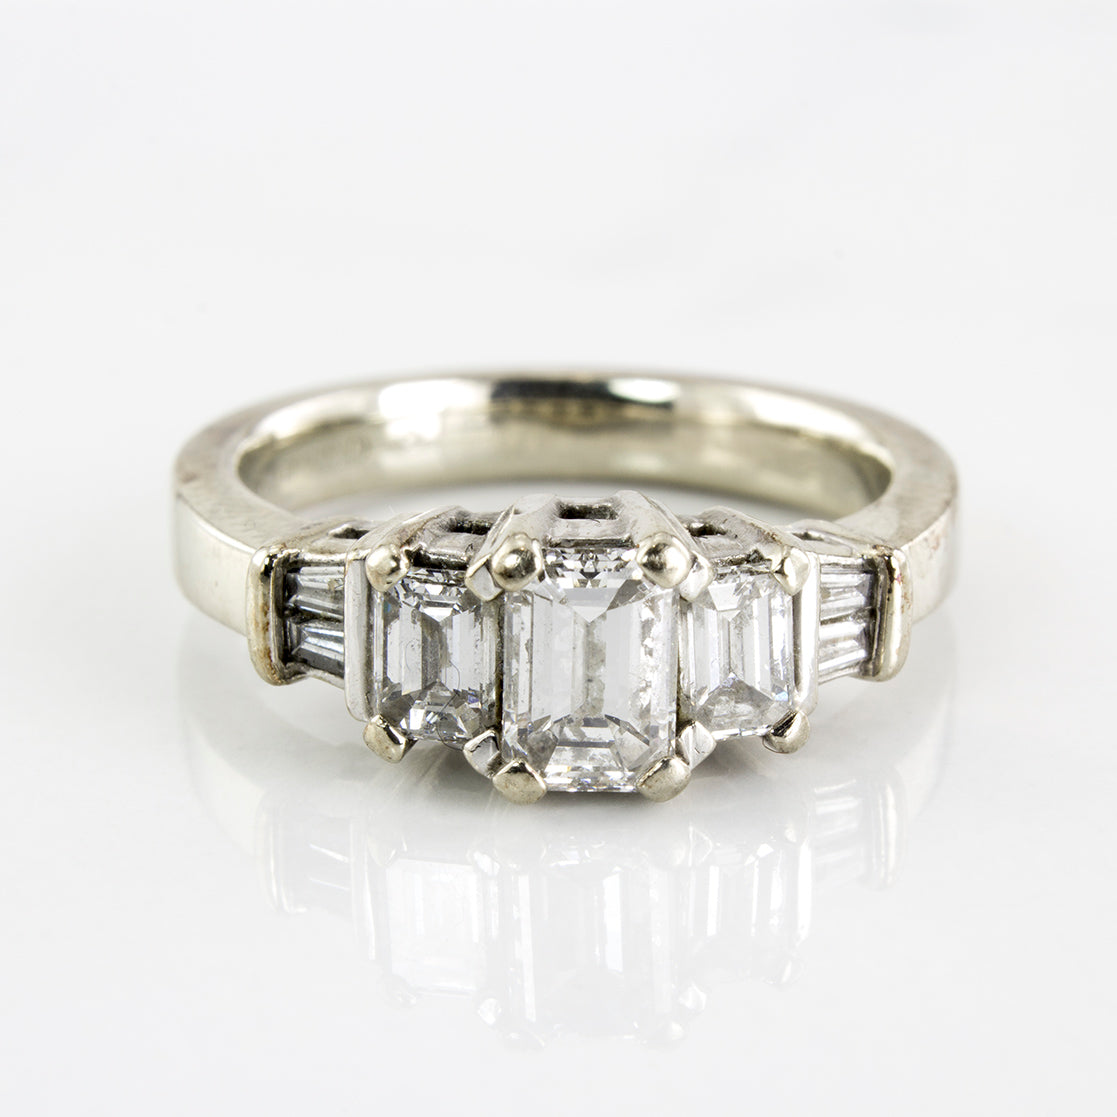 Three Stone Emerald Cut Engagement Ring | 1.00 ctw | SZ 5.75 |